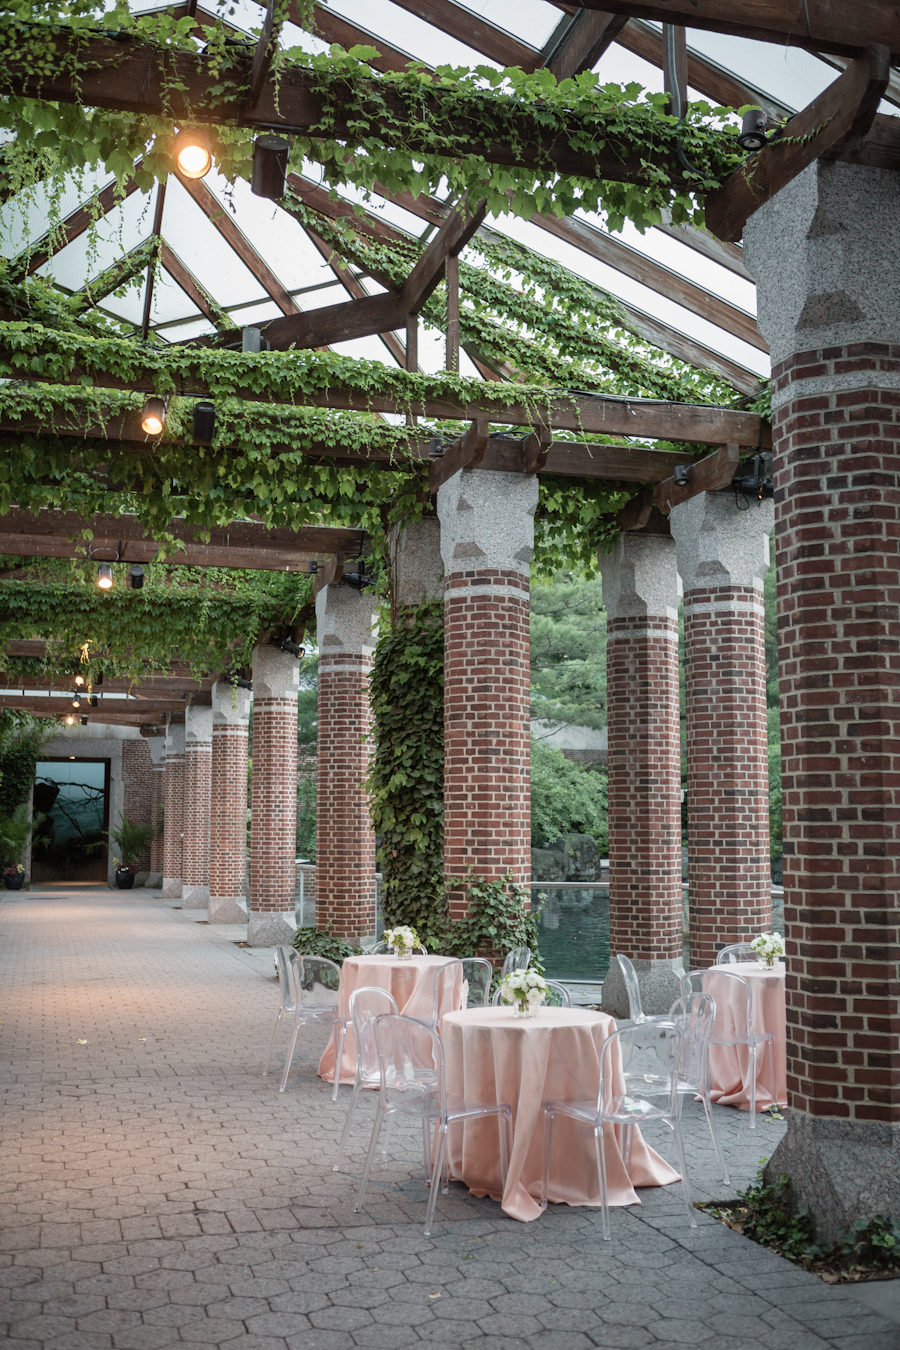 central park zoo wedding ang weddings and events-17.jpg